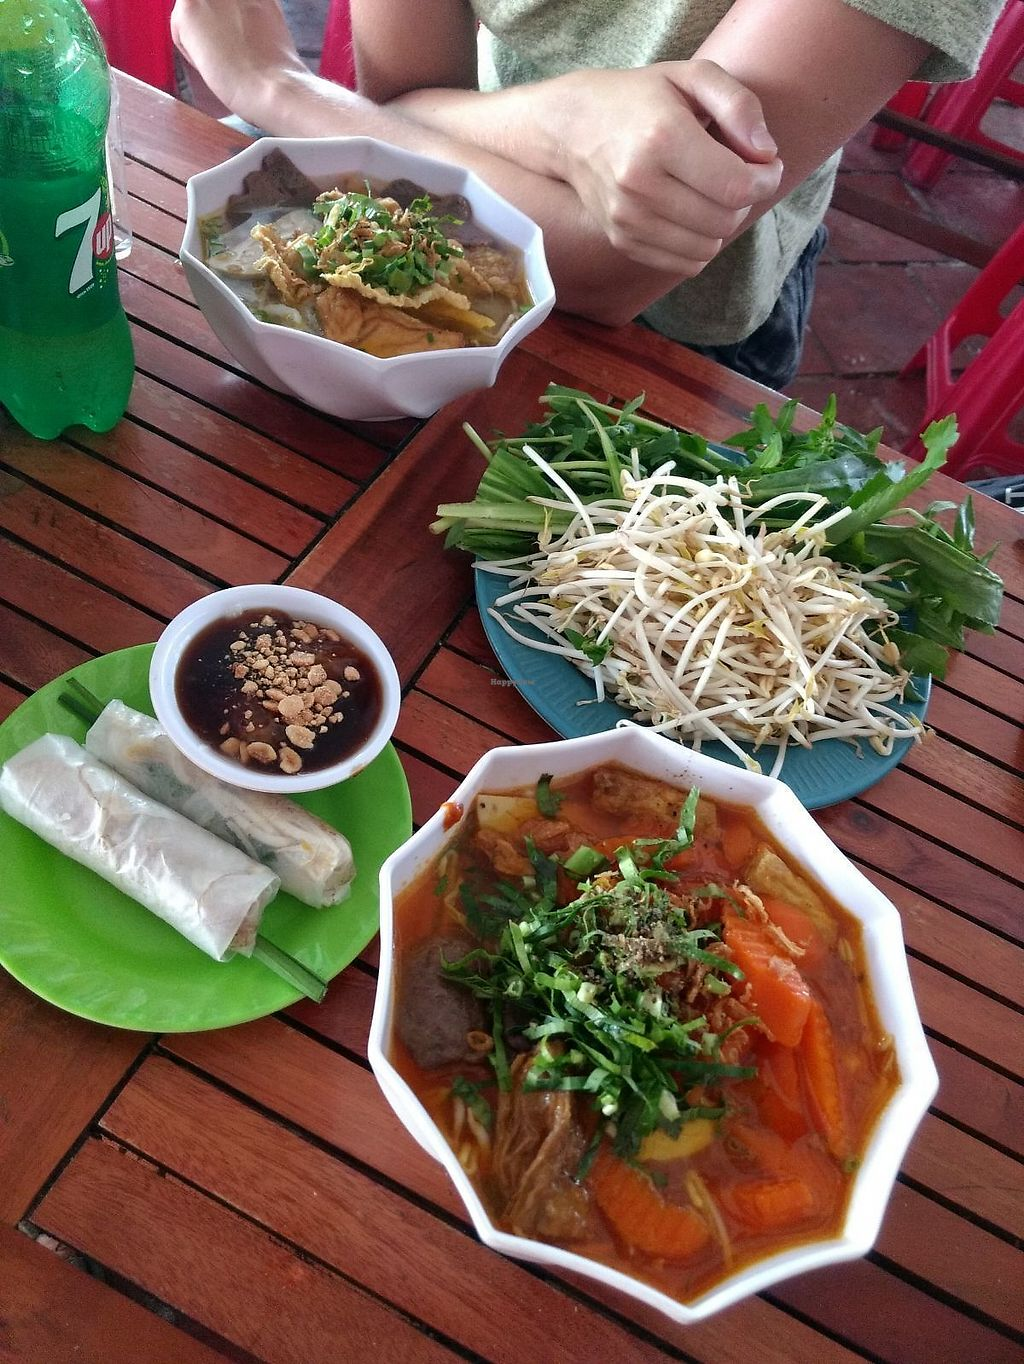 """Photo of Com Chay Cuong  by <a href=""""/members/profile/Kirsikkatuuli"""">Kirsikkatuuli</a> <br/>Soups and springrolls  <br/> March 18, 2018  - <a href='/contact/abuse/image/12793/372335'>Report</a>"""